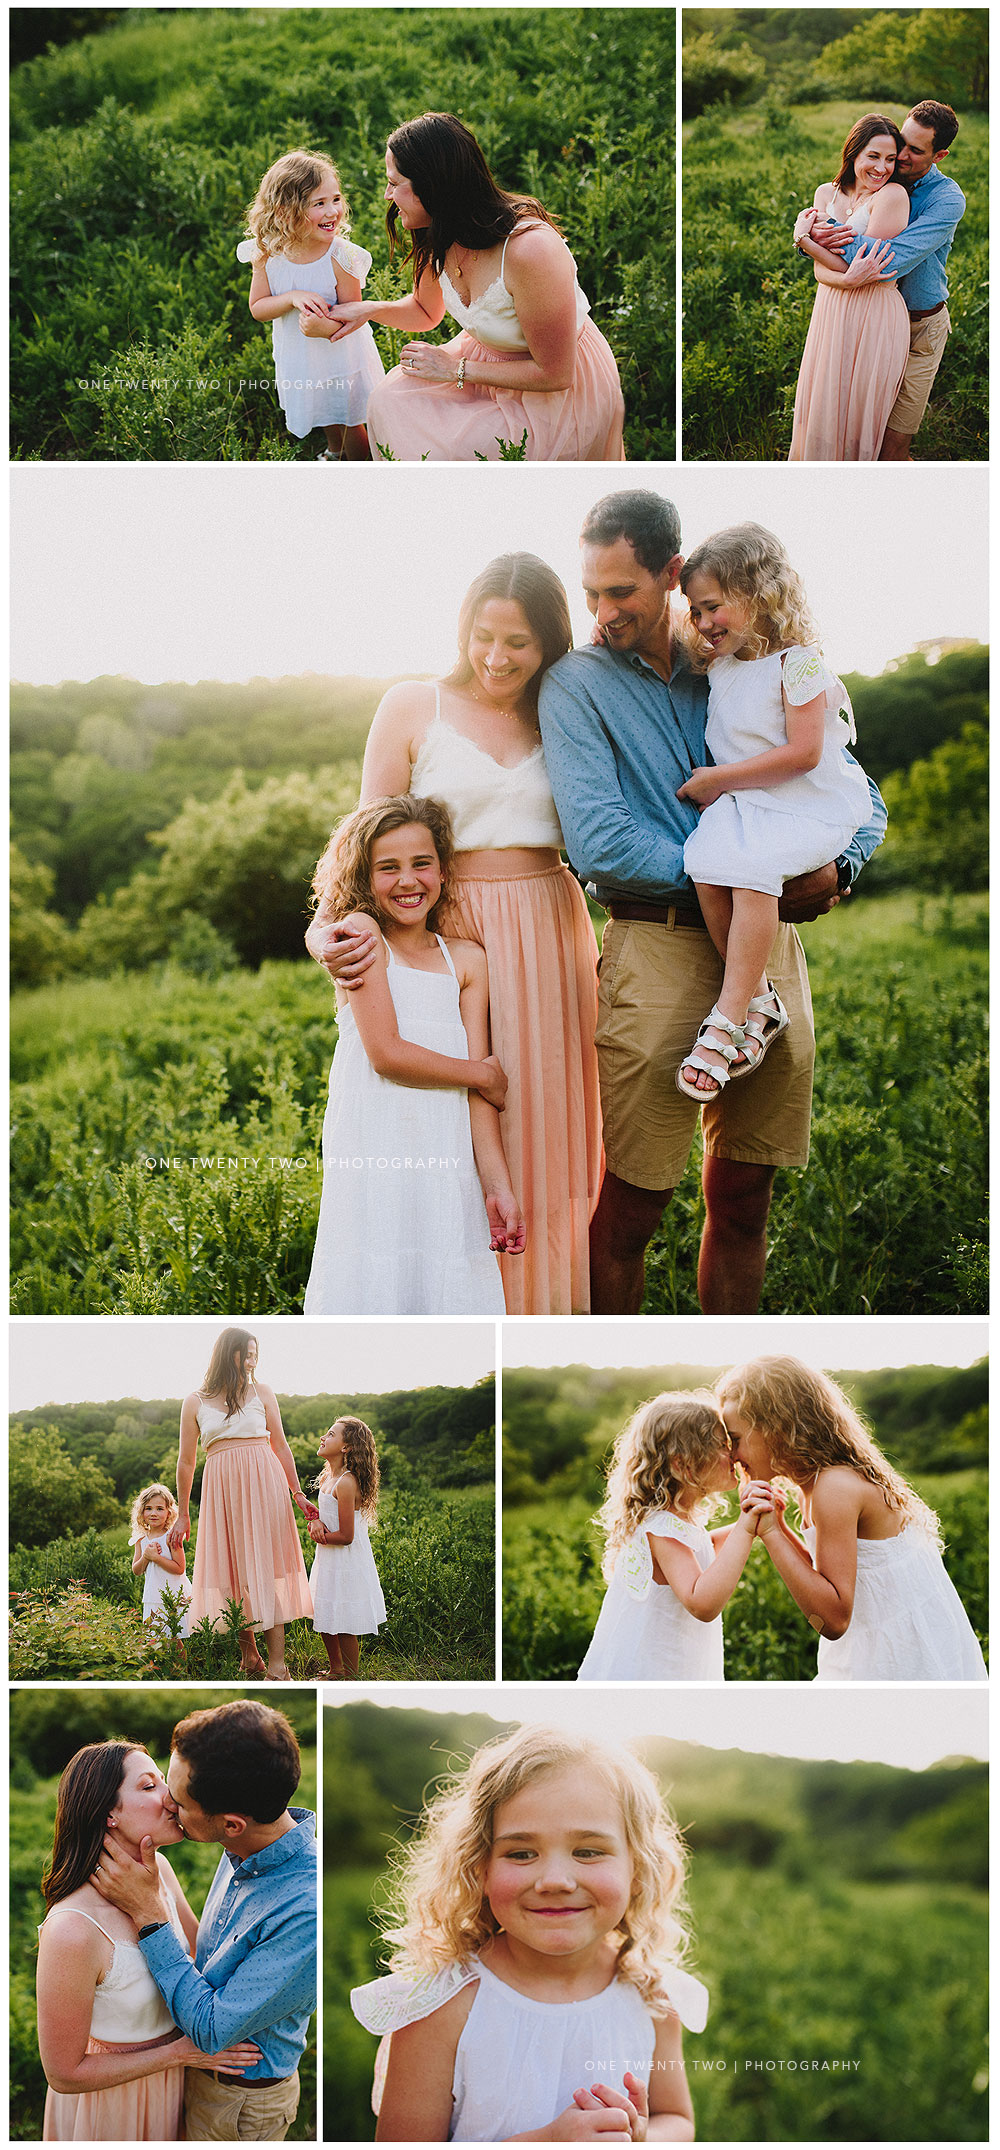 kirkwood-missouri-gorgeous-family-summer-portraits-in-field-best-photographer-one-twenty-two.jpg